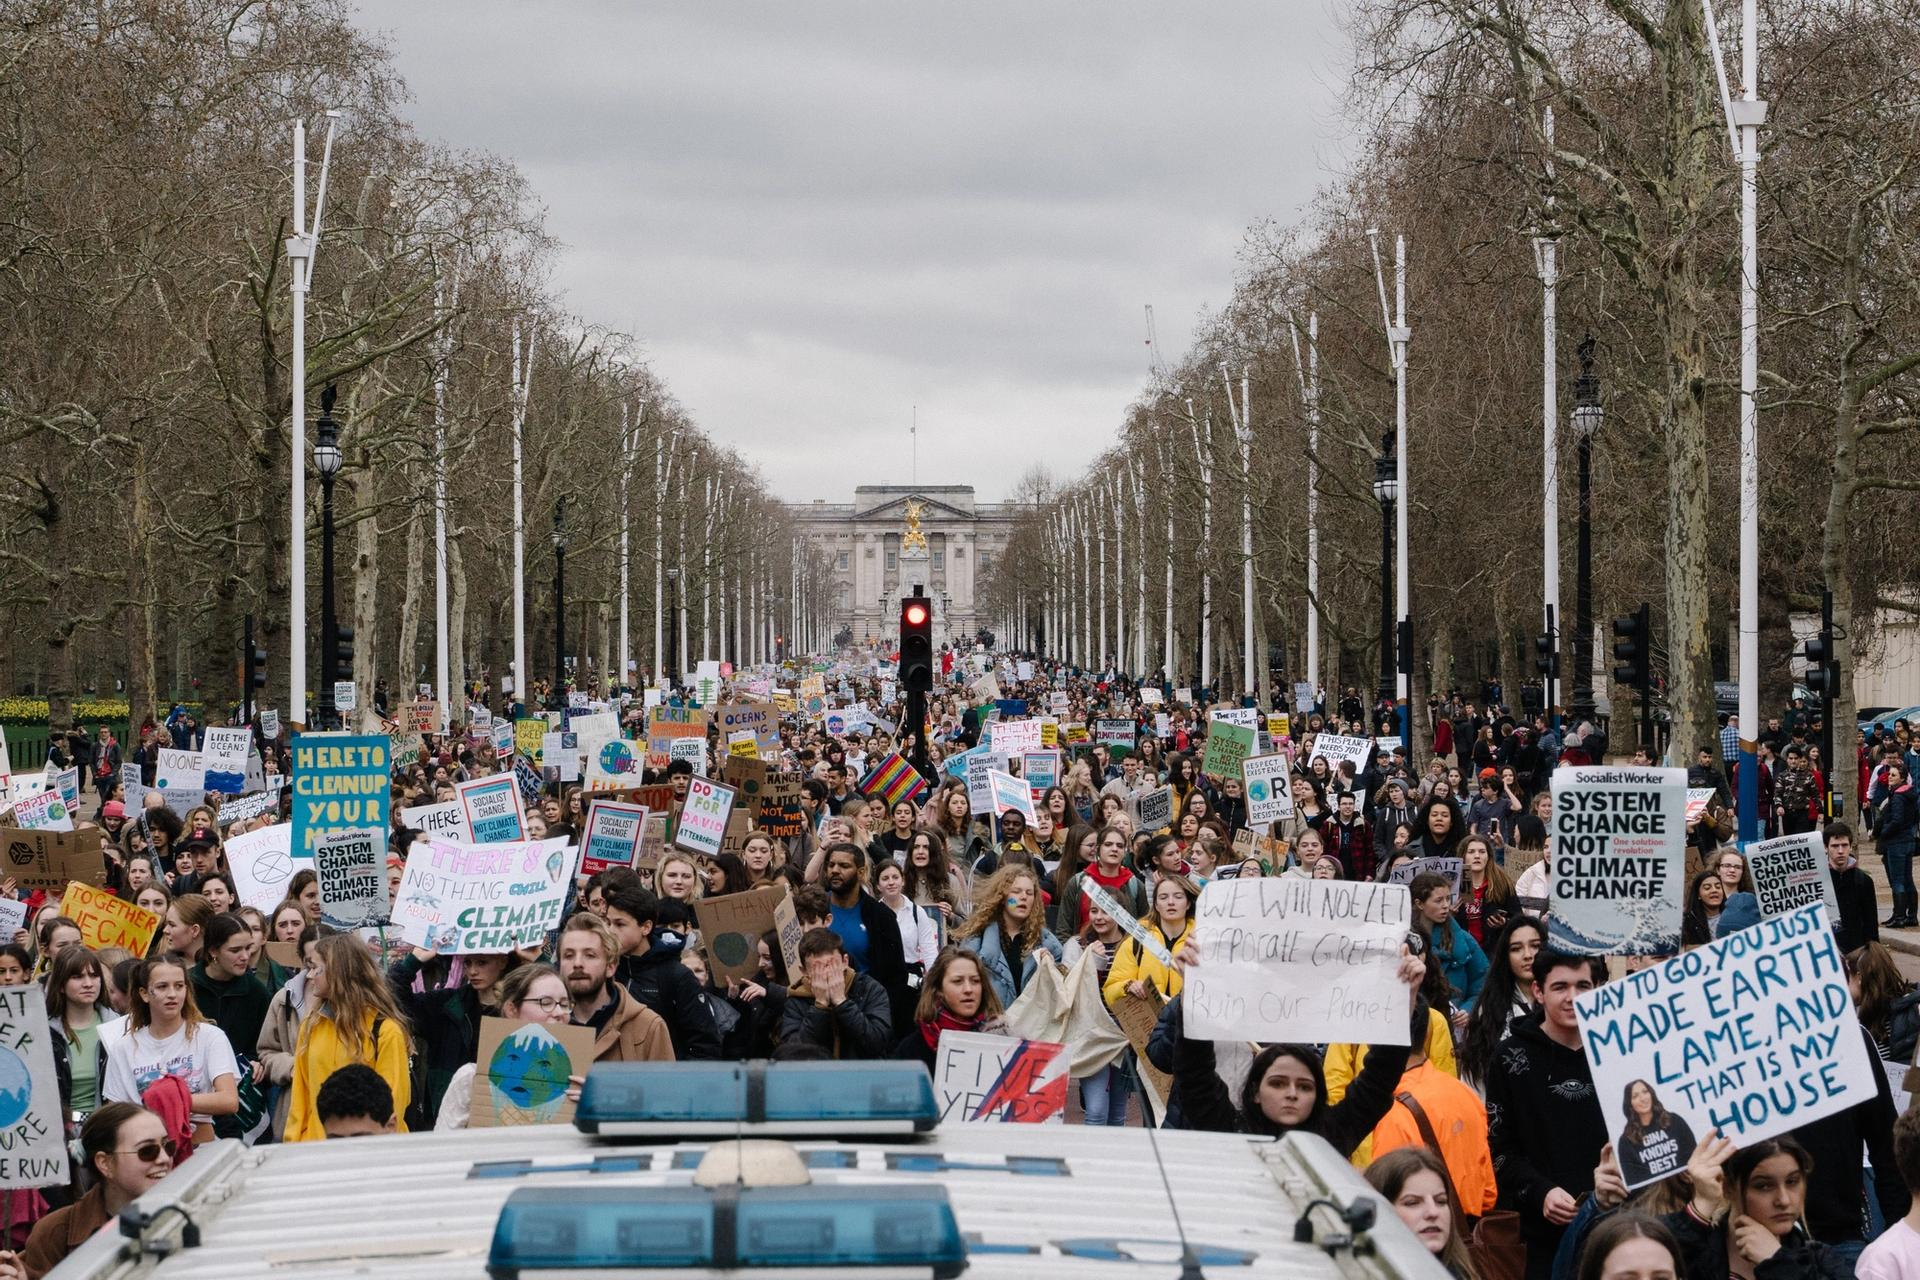 Student climate march London